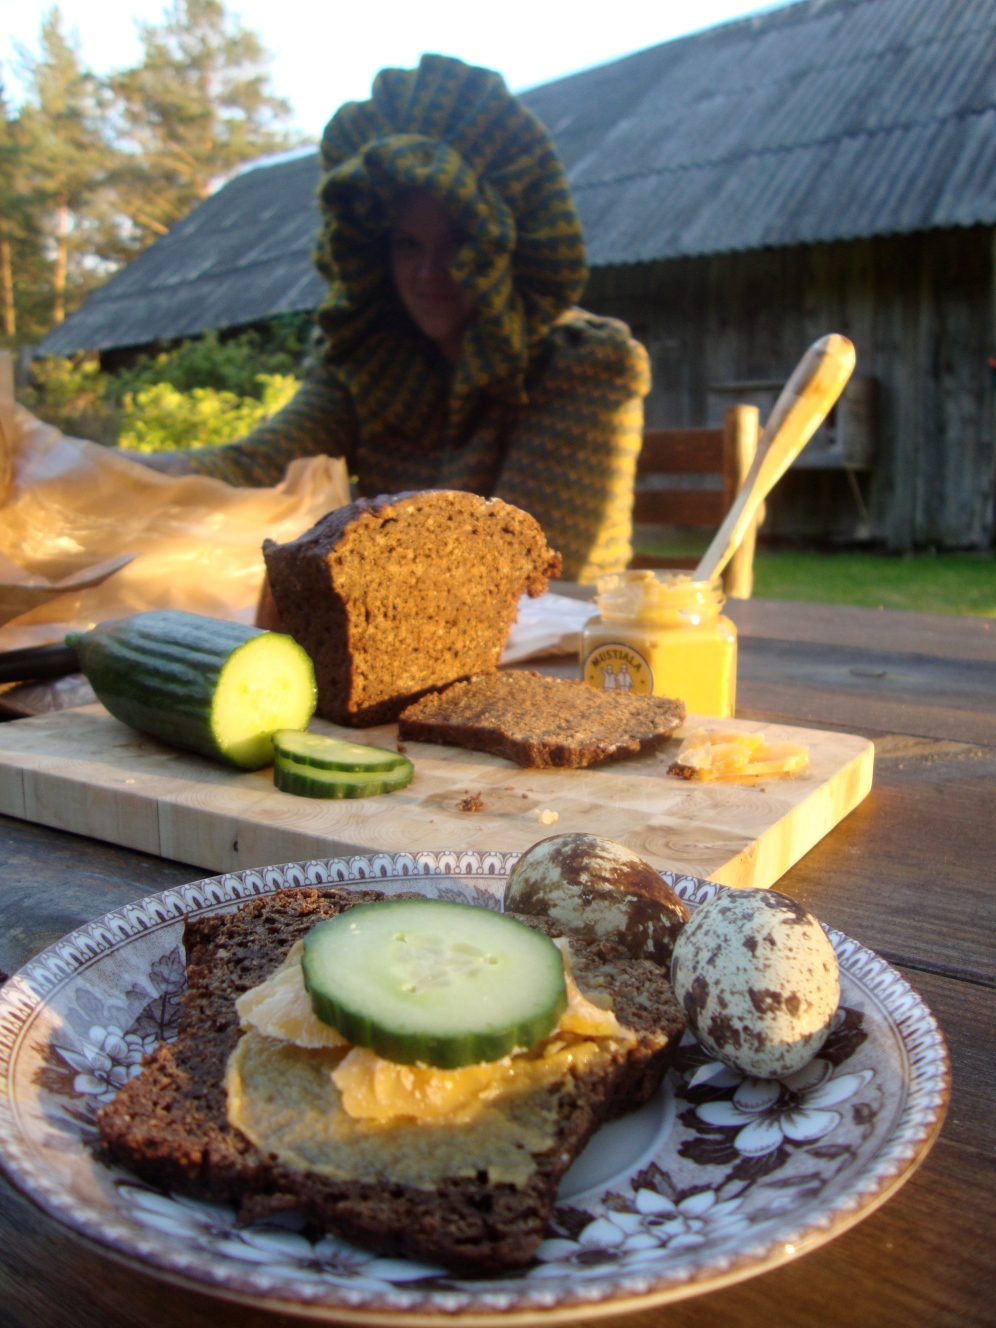 Snack time on the Isle of Cats- Estonian Open Faced Sandwiches https://bigsislittledish.wordpress.com/2012/07/08/snack-time-on-the-island-of-cats/